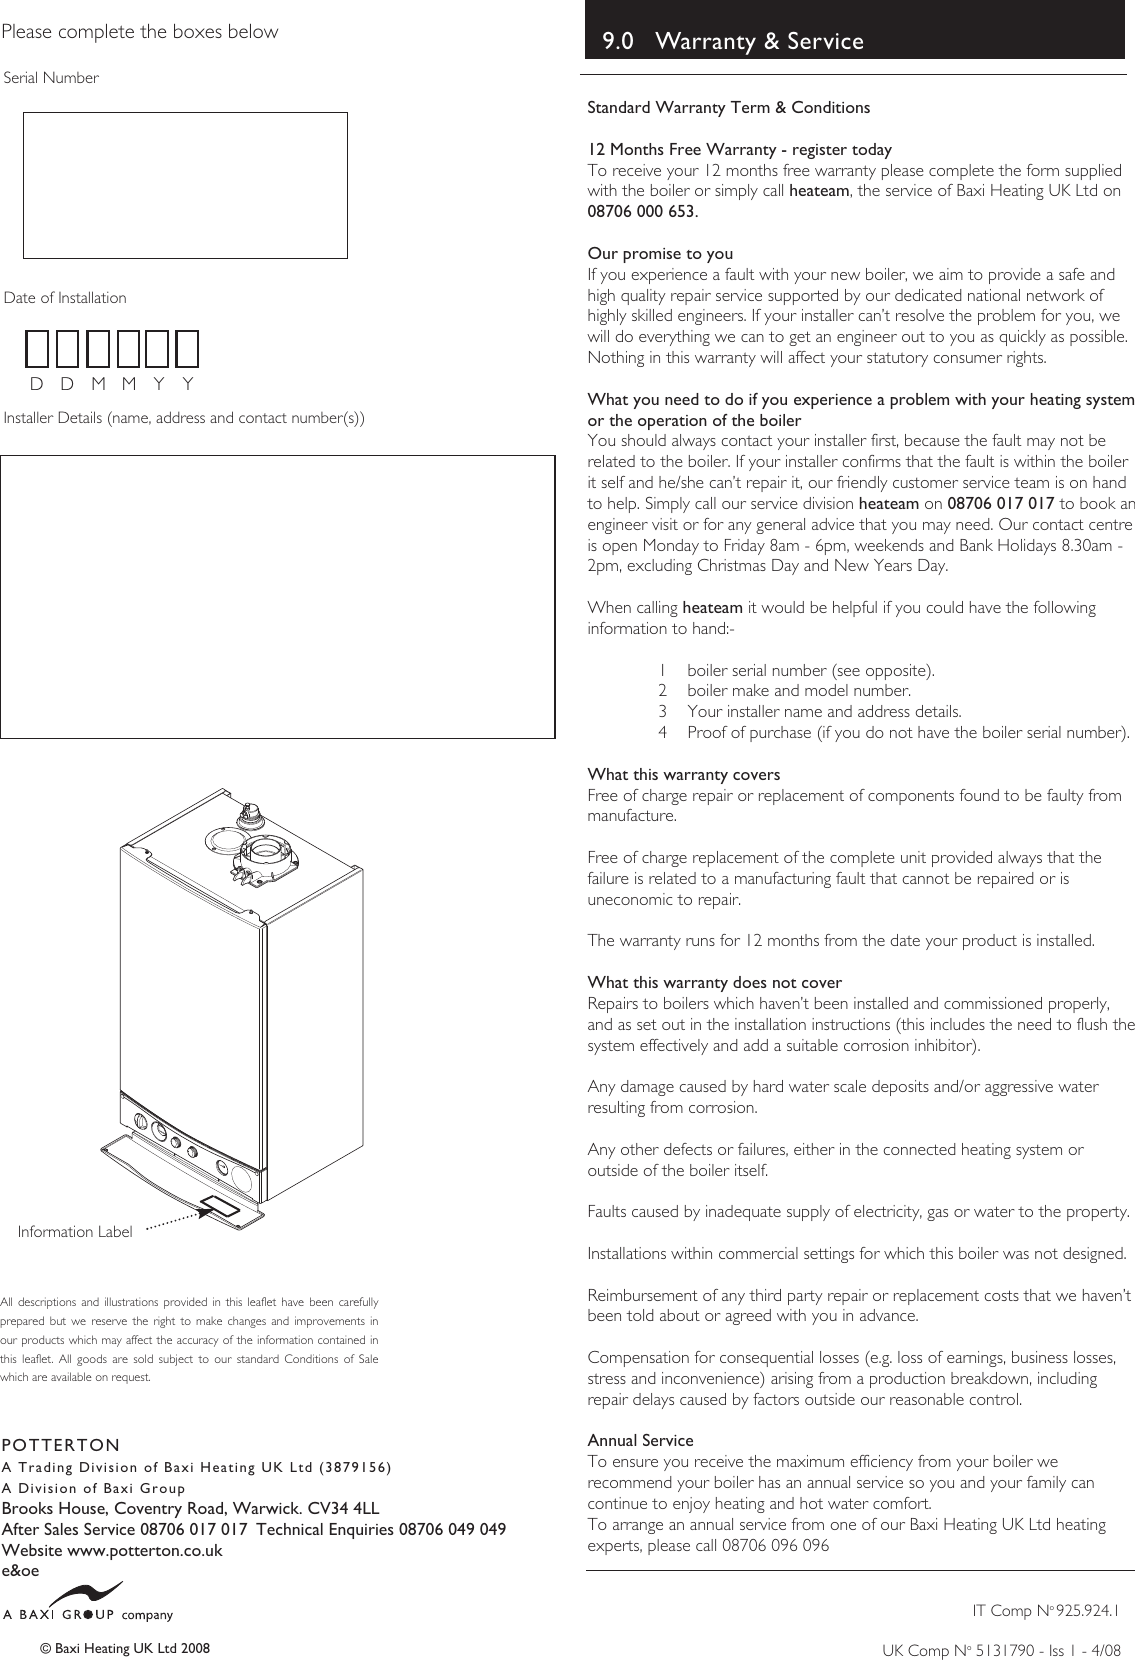 Baxi potterton boiler users manual 5119467 operating page 12 of 12 baxi potterton baxi potterton boiler users asfbconference2016 Images